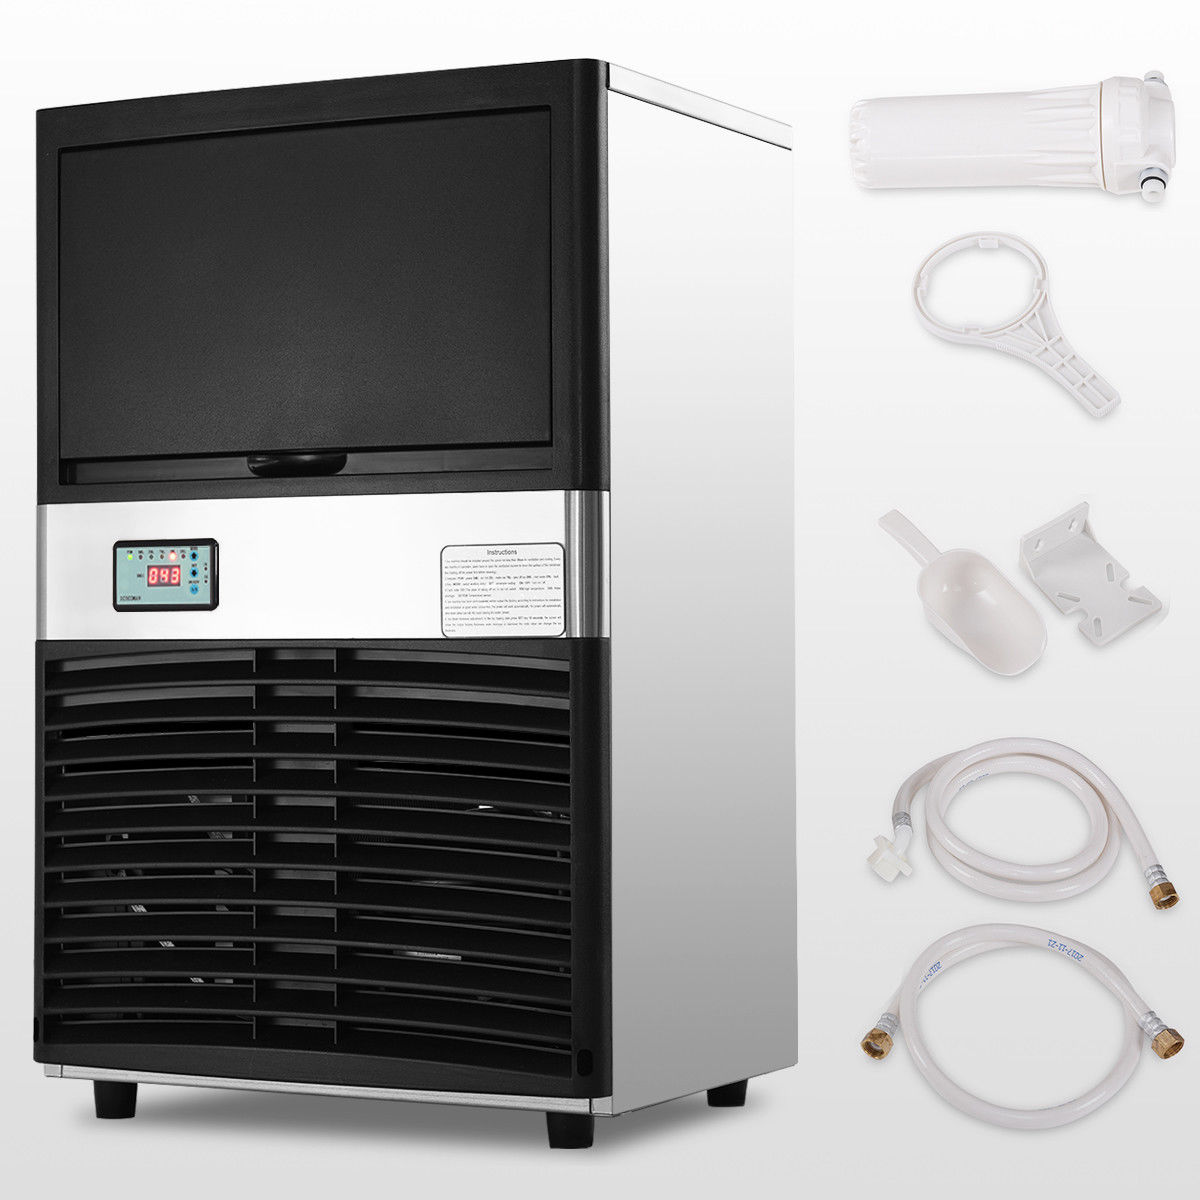 Costway Commercial Ice Maker Automatic Stainless Steel 100lbs/24h Freestanding Portable